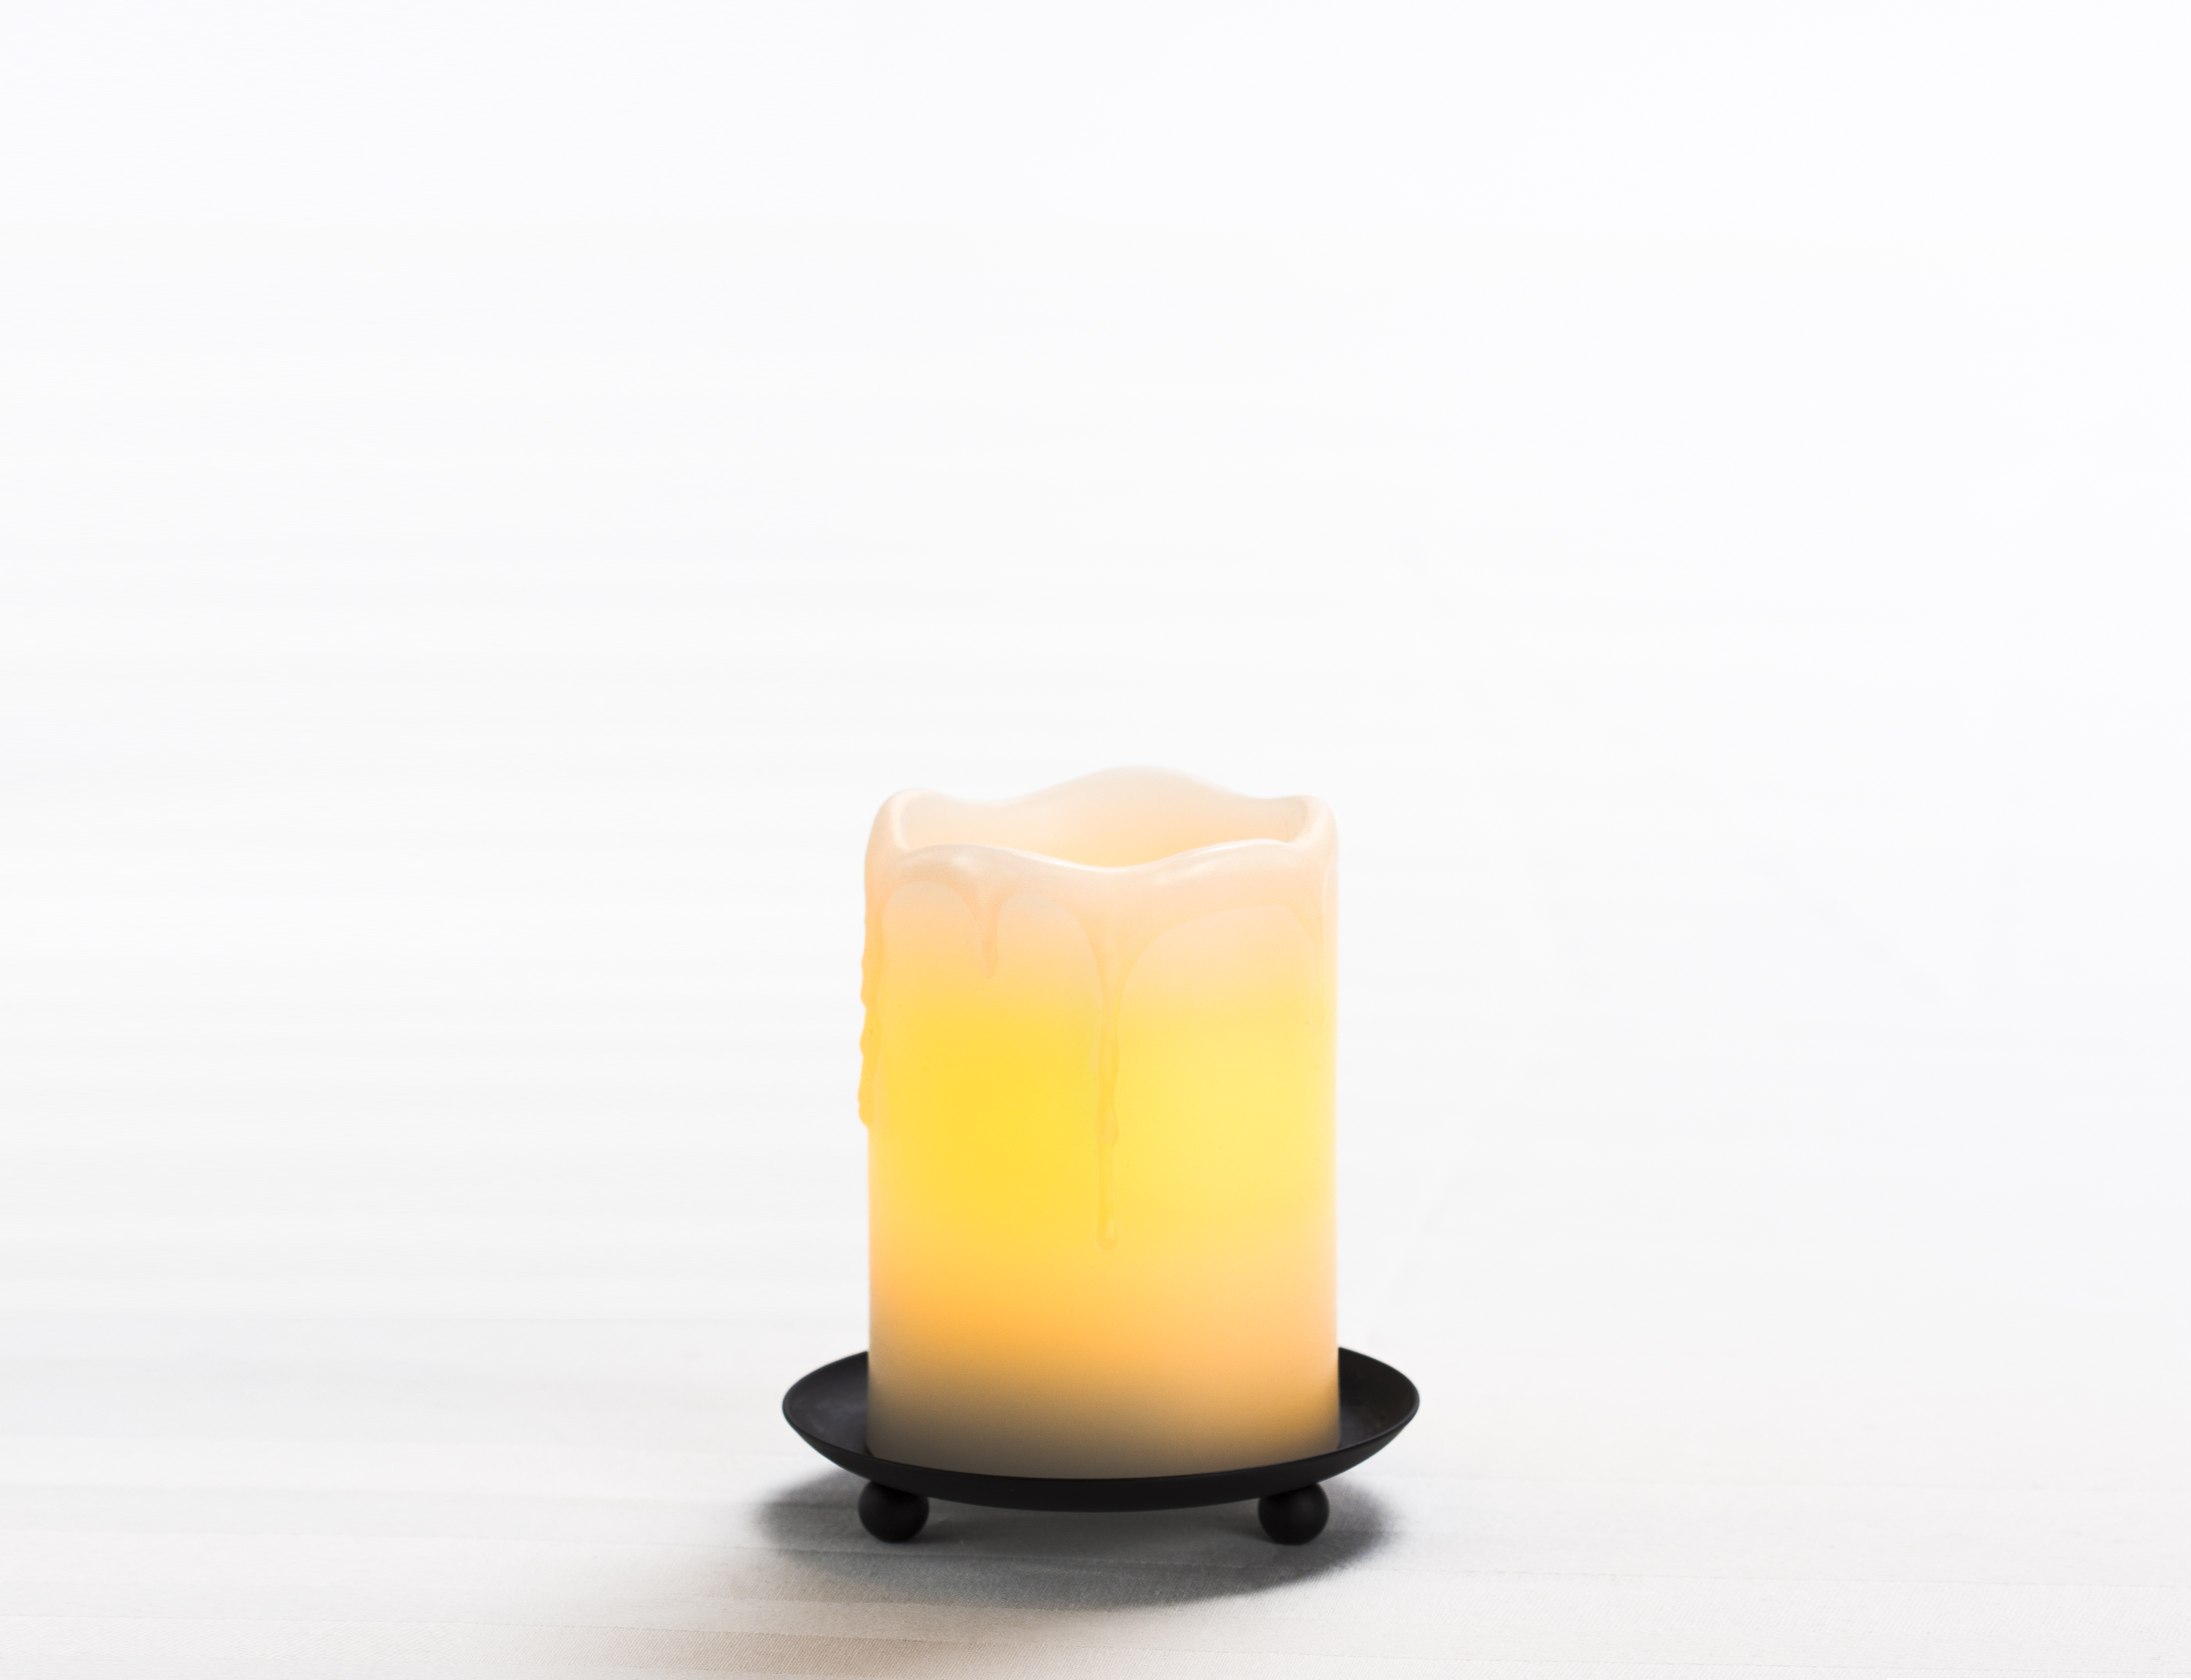 4 Inch Flameless Melting Look Pillar Candle with Timer - Cream with Vanilla Scent